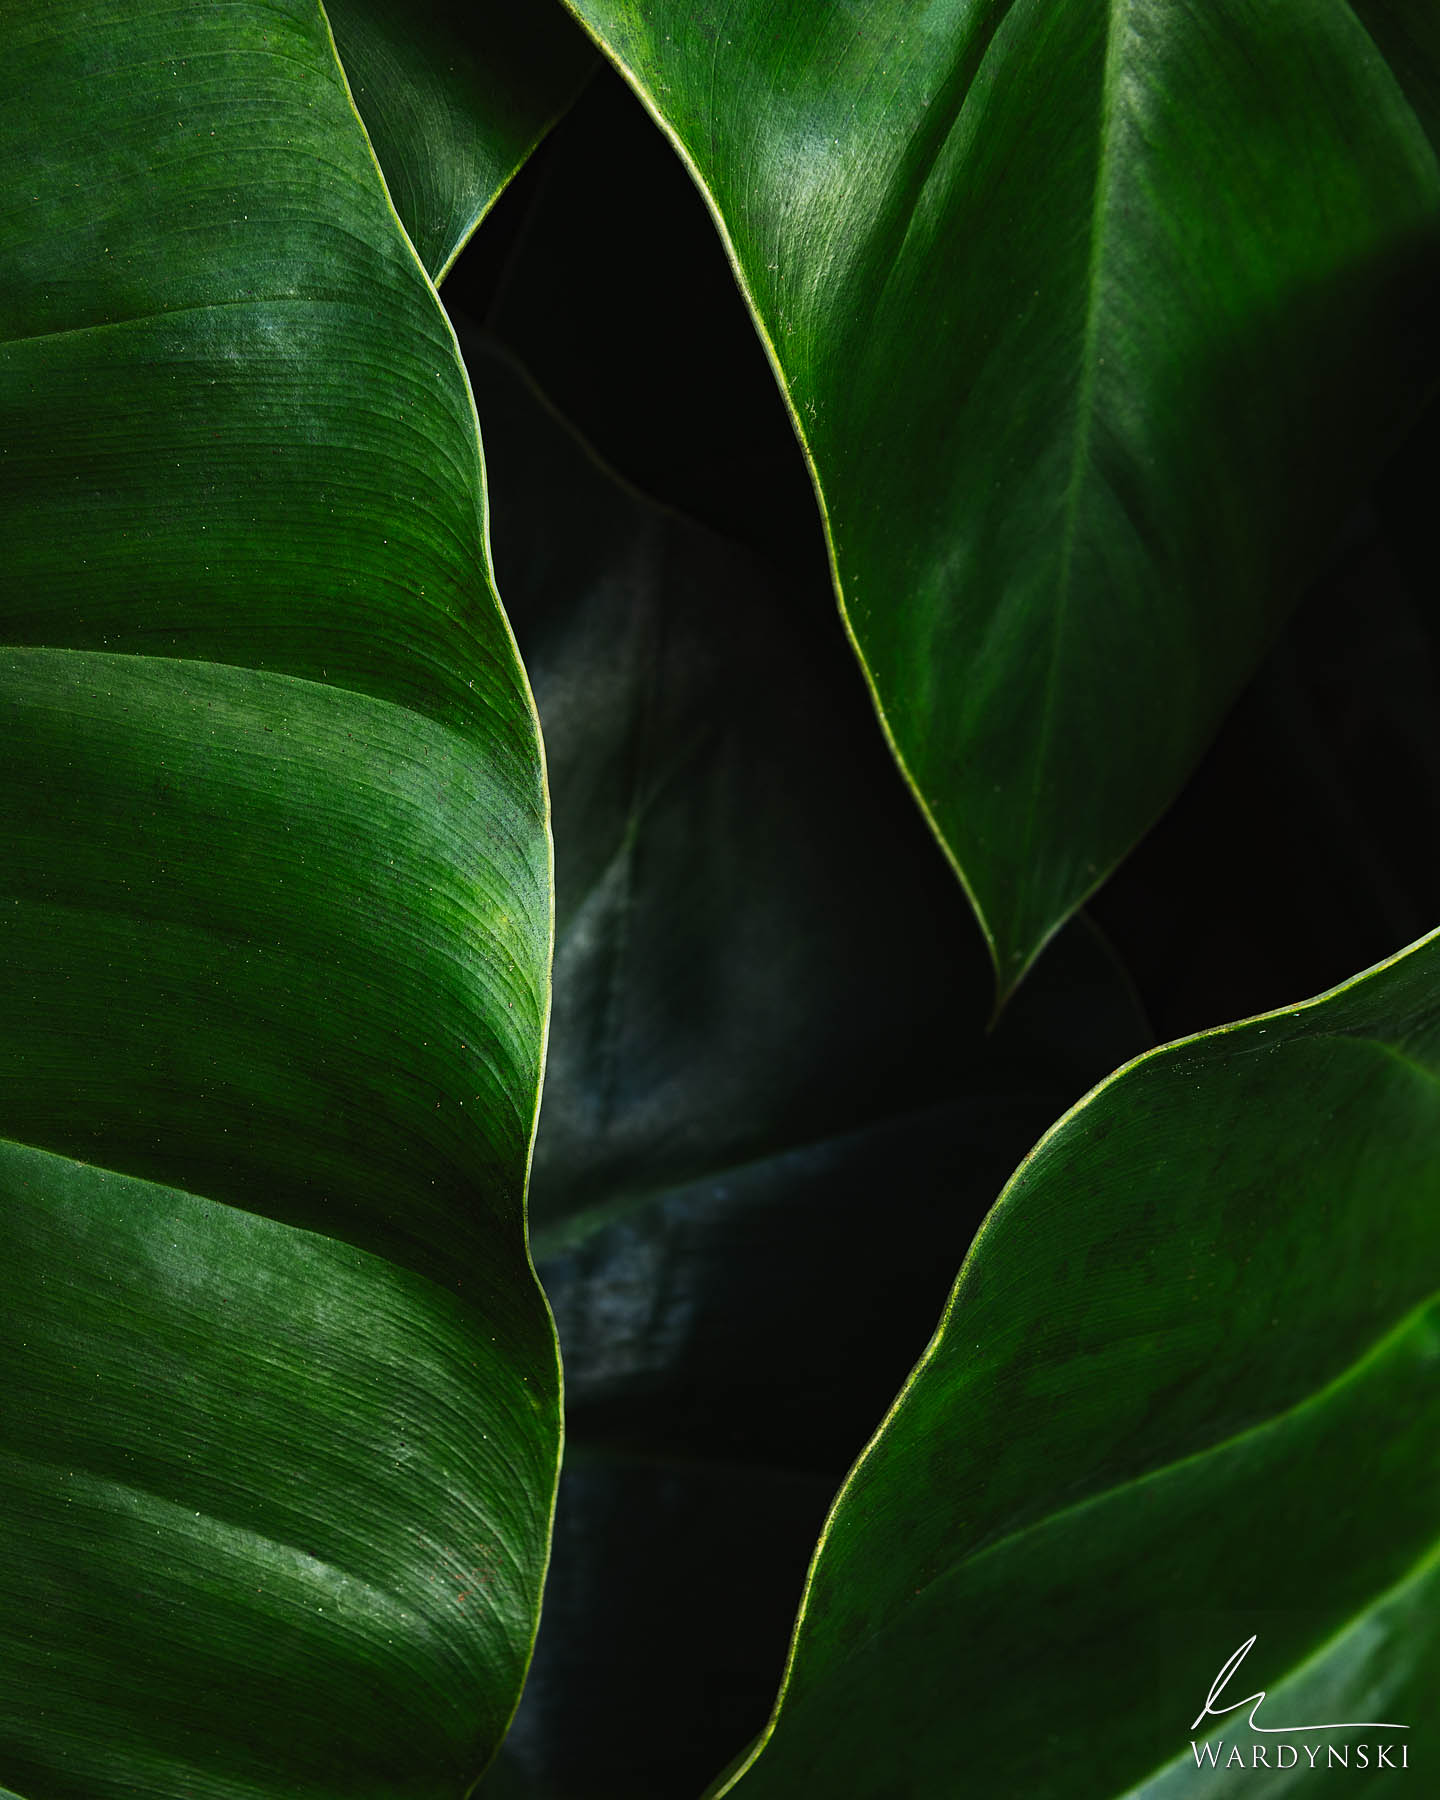 Fine Art Print | Limited Edition of 35  Green is the color of life, renewal and energy. It represents growth and is commonly...